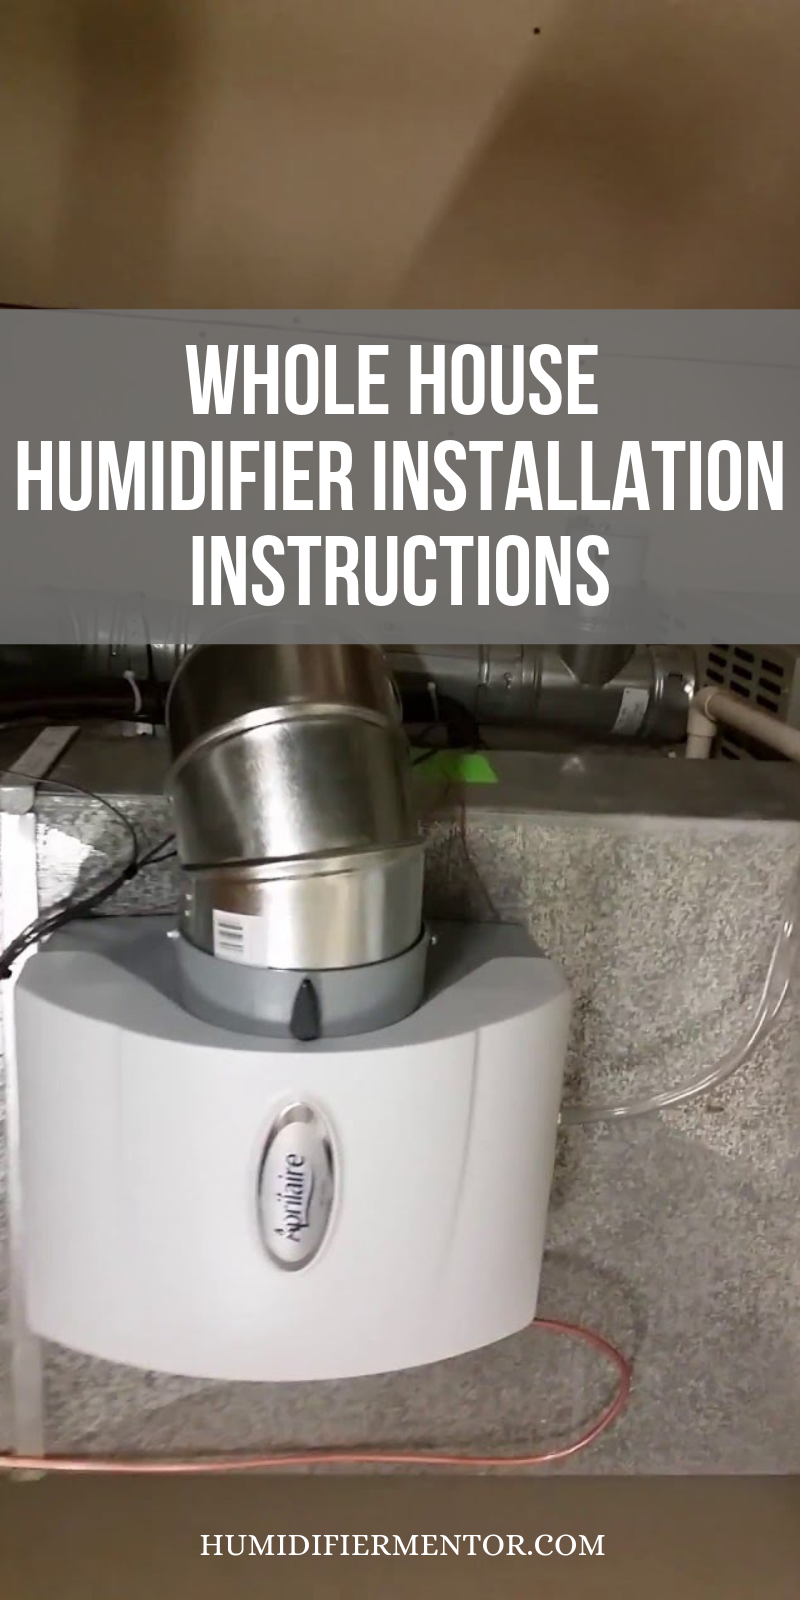 Whole House Humidifier Installation Instructions Humidifier Installation Best Whole House Humidifier Humidifier